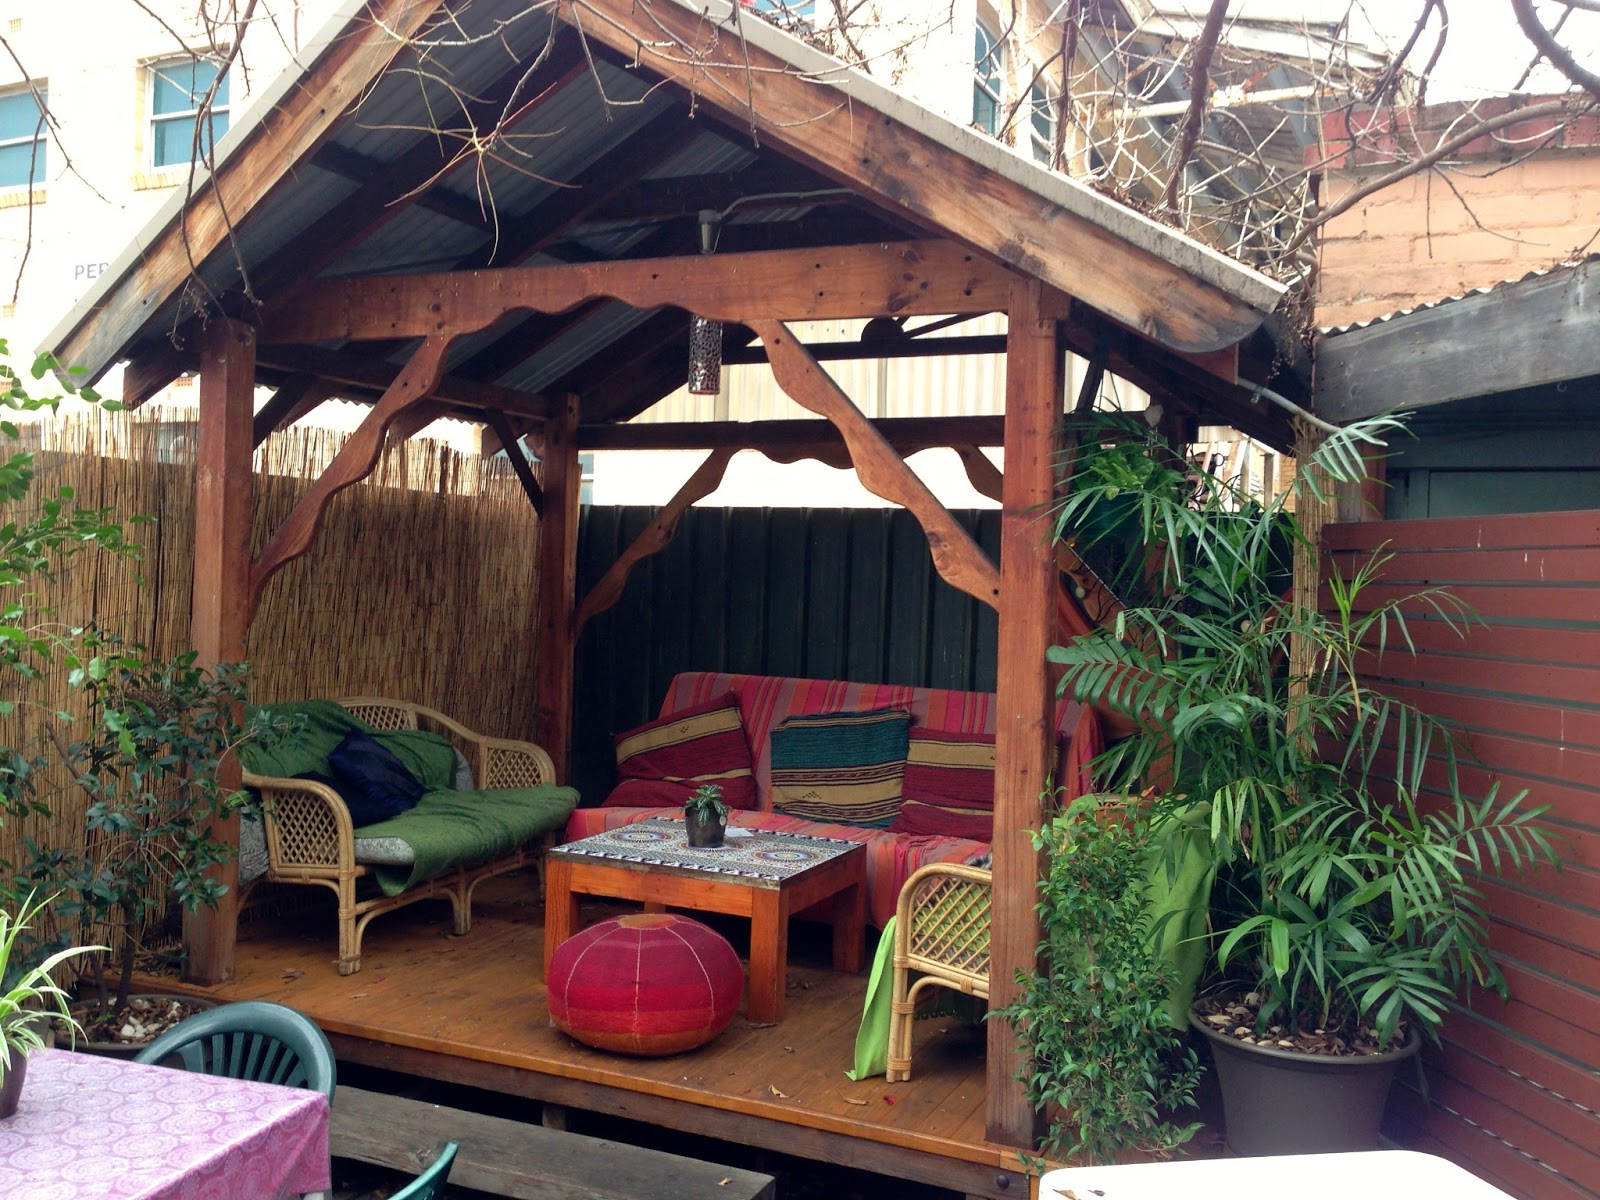 Outdoor garden and hut  - Bliss Organic Cafe, Adelaide